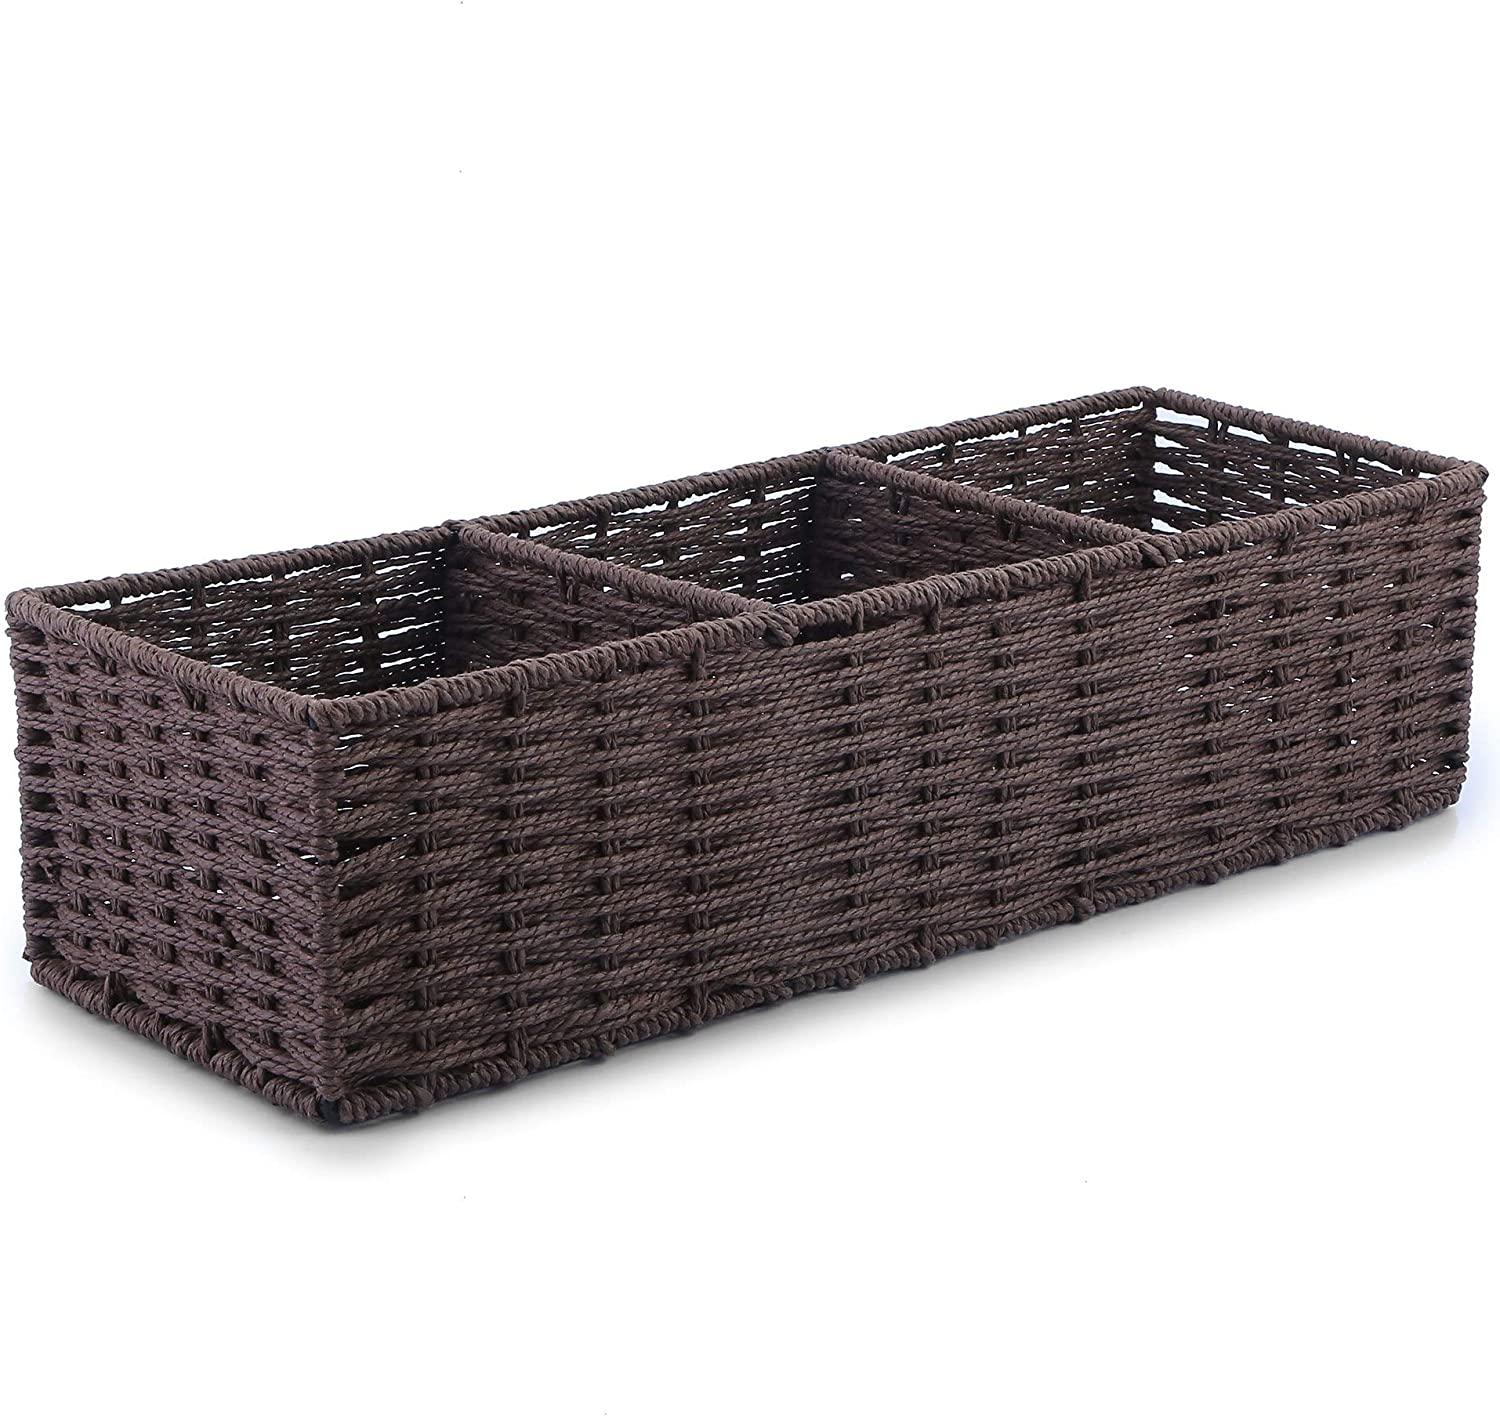 Toilet Paper Storage Bathroom Baskets Organizer, Over Above Small Tiny Woven dividers Basket Tray Bins Counter Organizer Decor Box Rustic Toilet Tank top Cabinet Tray Closet Drawer Rectangle Spice